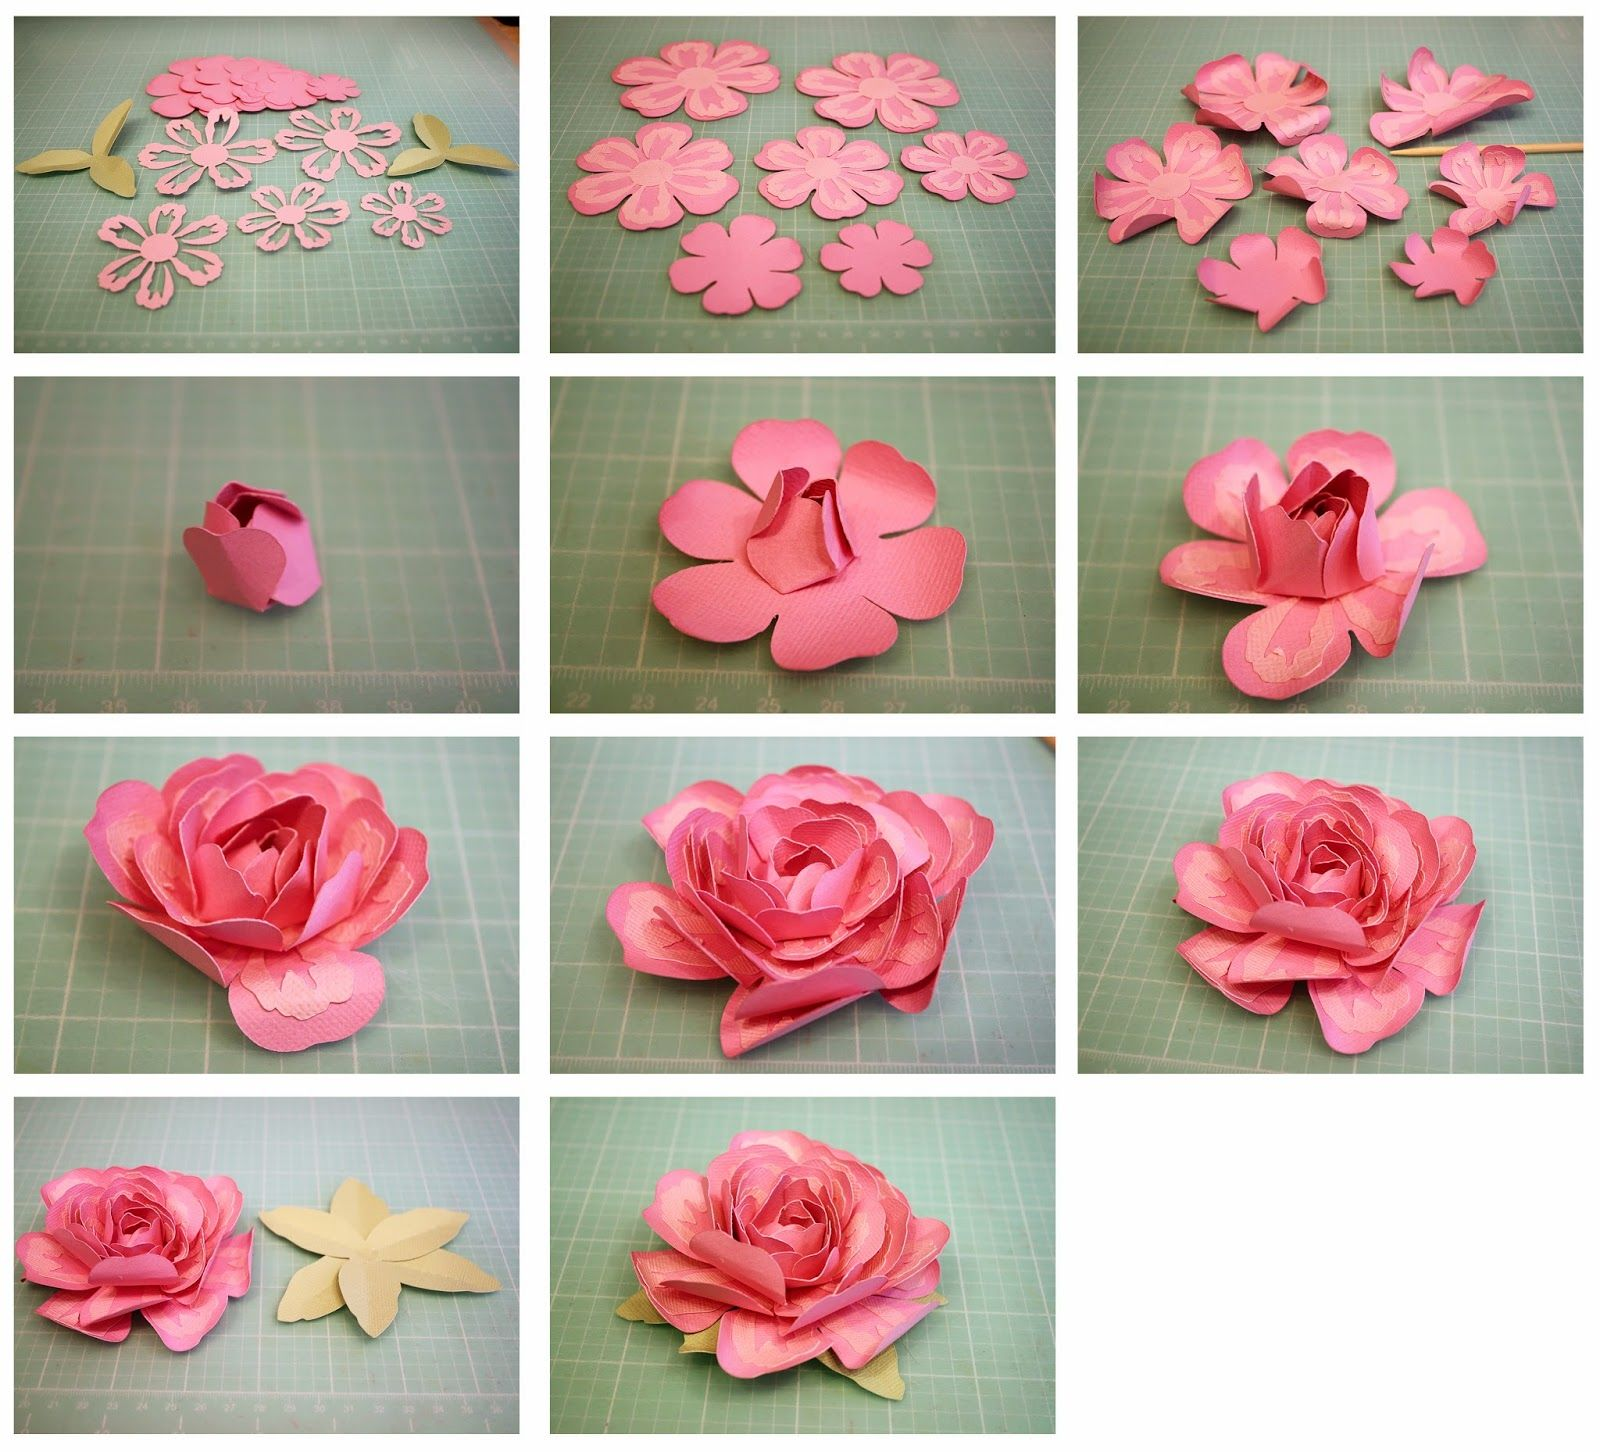 3d Layered Rose And Penstemon Paper Flowers Flowers Pinterest